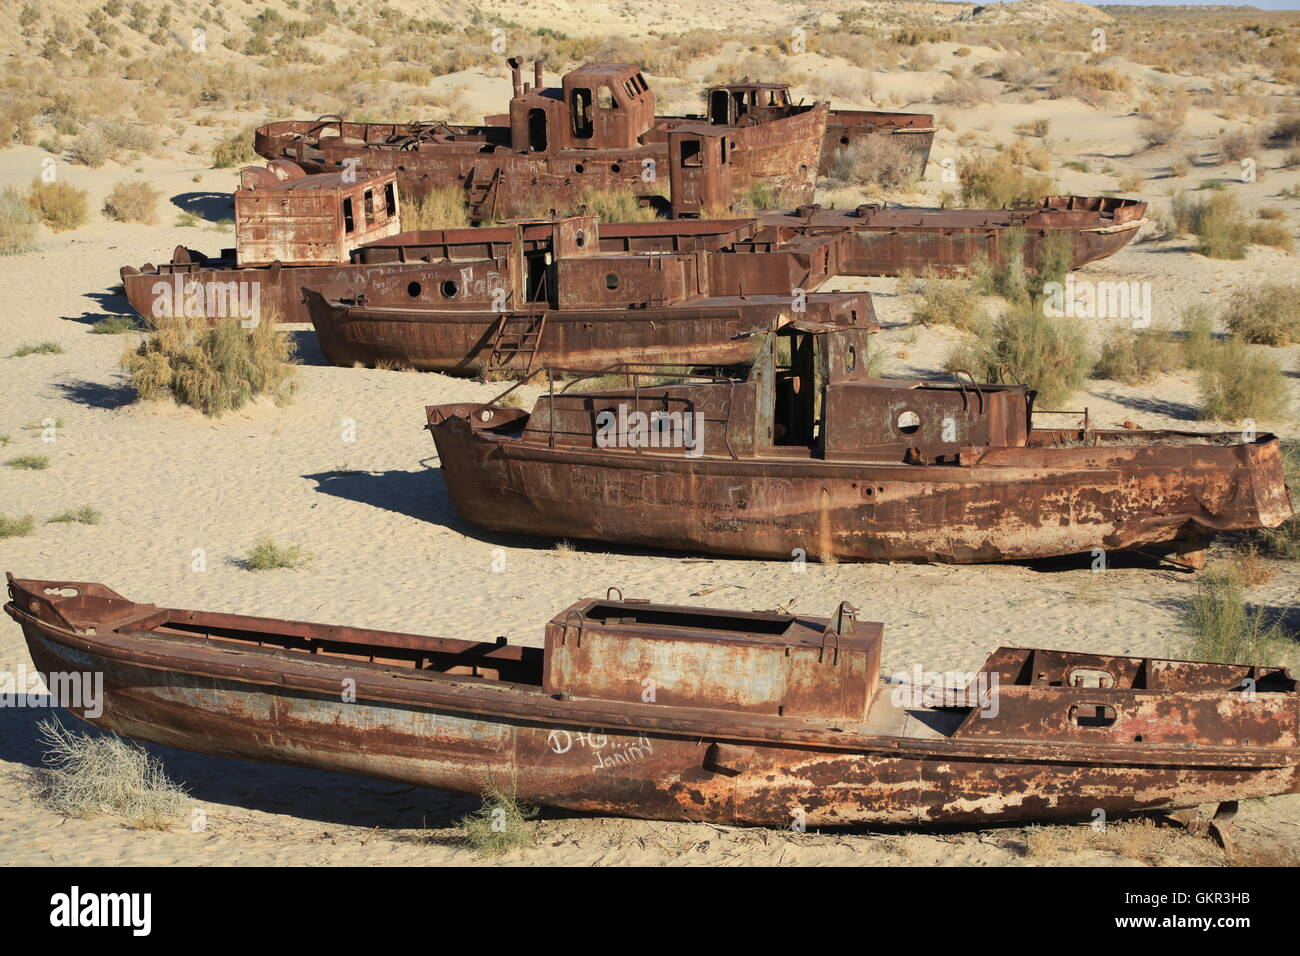 Rusted ships on the former seabed of Aral Sea near Moynaq, Uzbekistan. - Stock Image